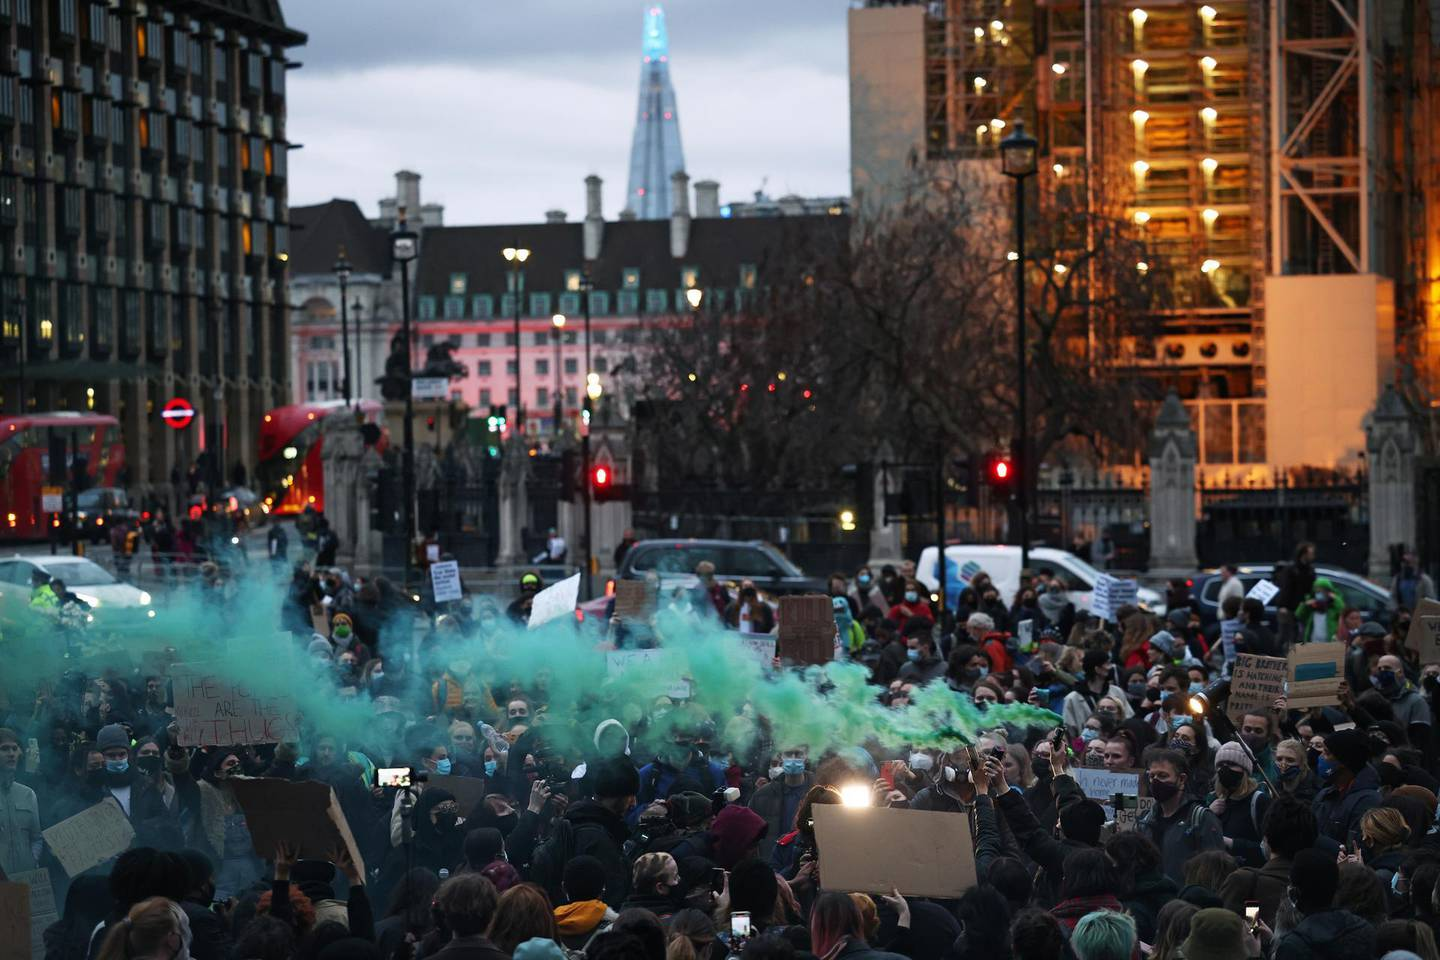 Demonstrators protest at Parliament Square, following the kidnap and murder of Sarah Everard, in London, Britain, March 16, 2021. REUTERS/Henry Nicholls